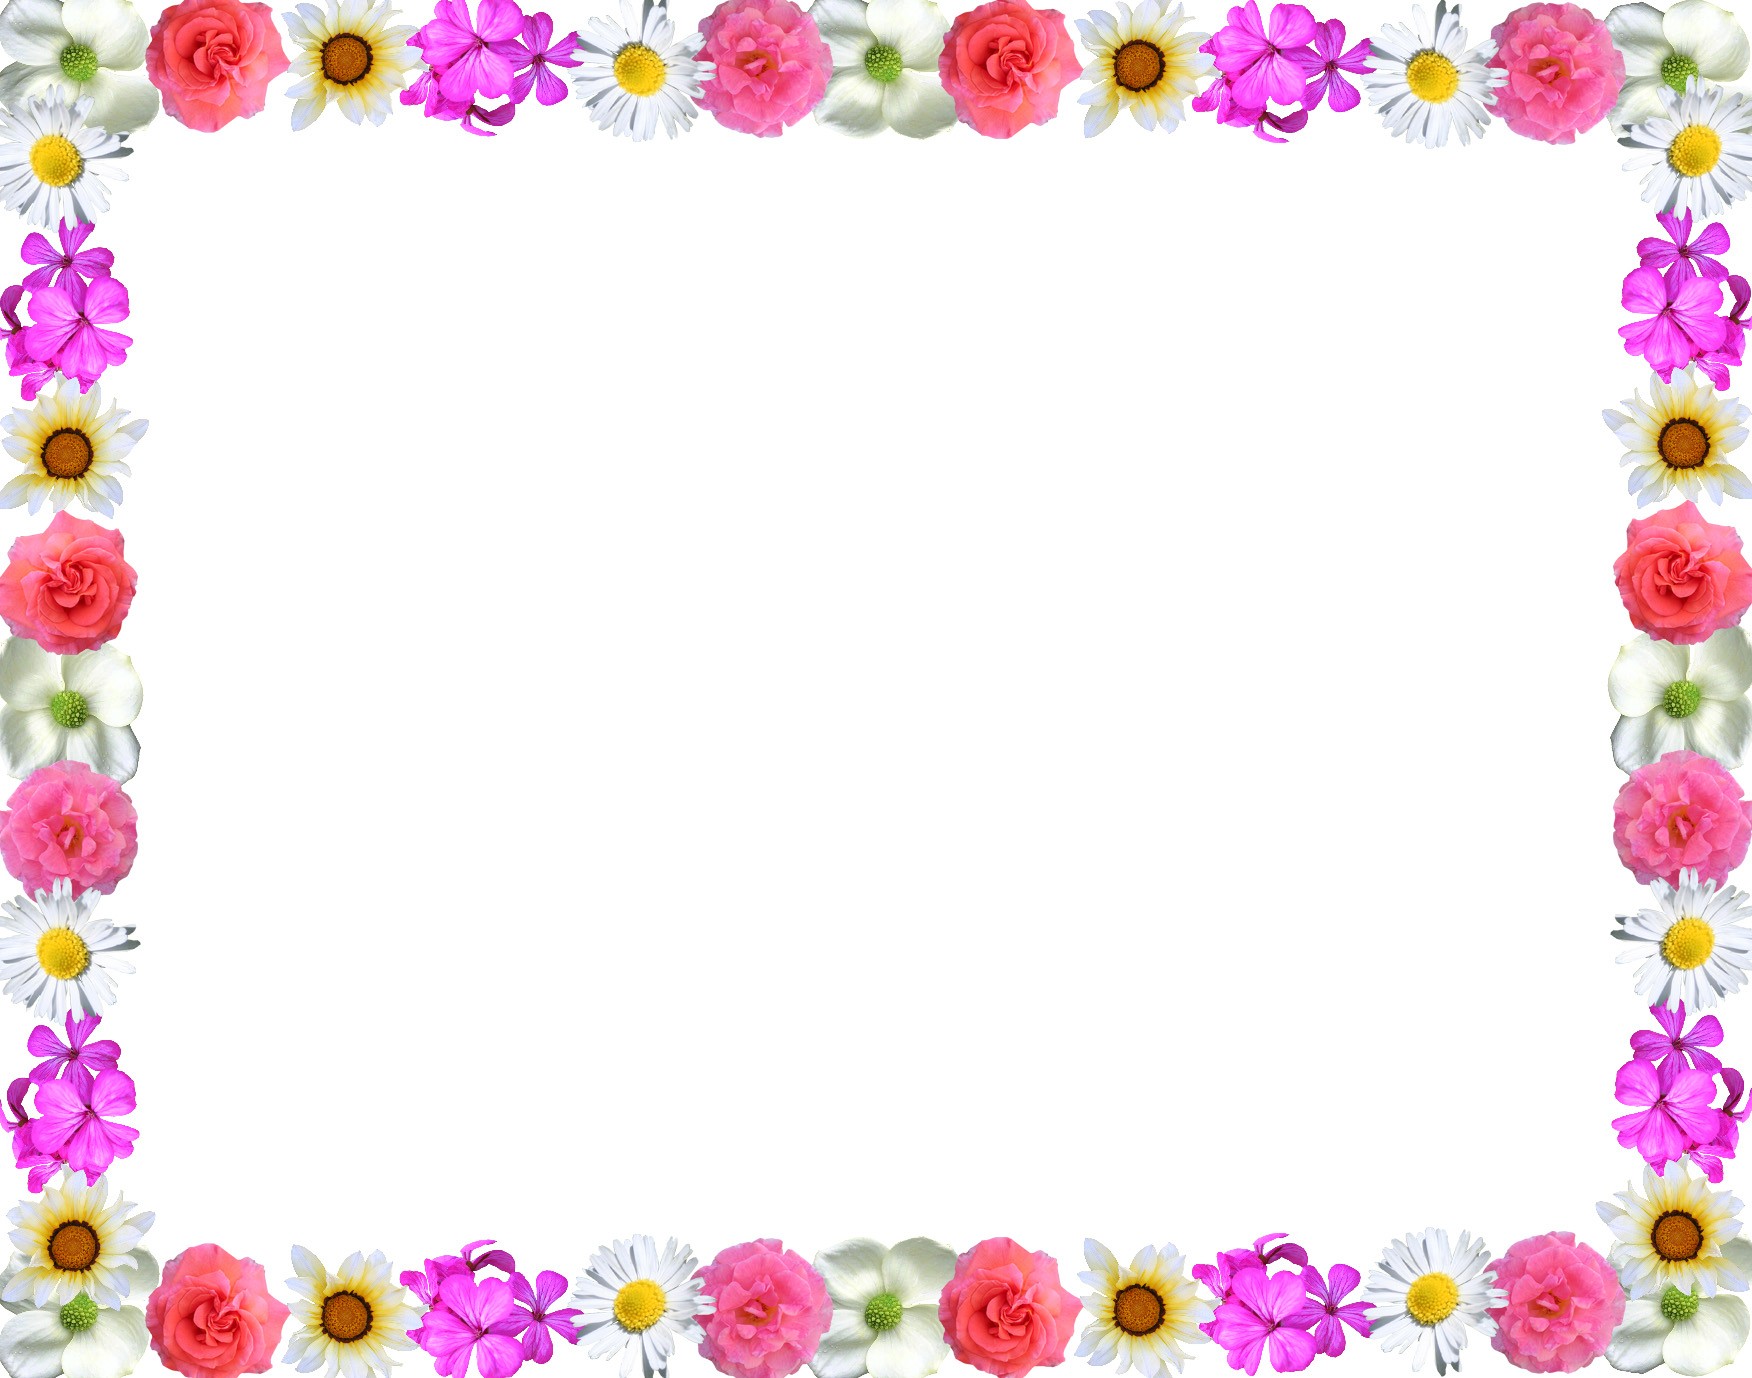 Simple Flower Design Border - ClipArt Best